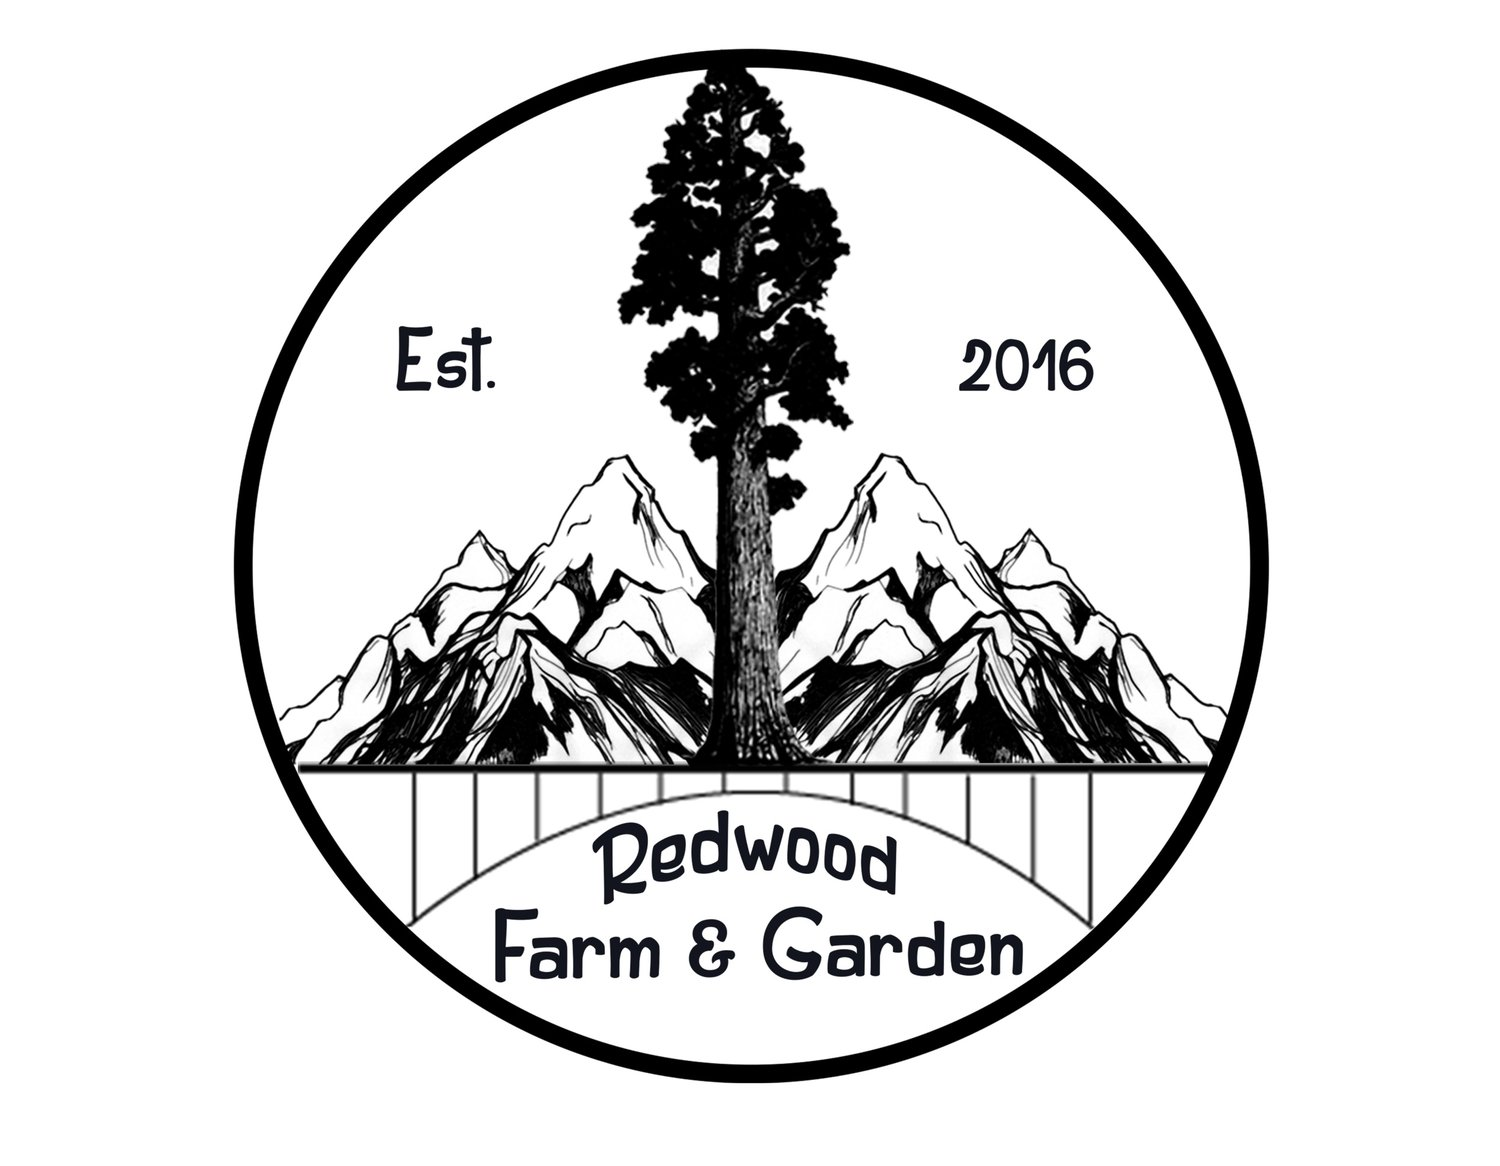 REDWOOD FARM & GARDEN